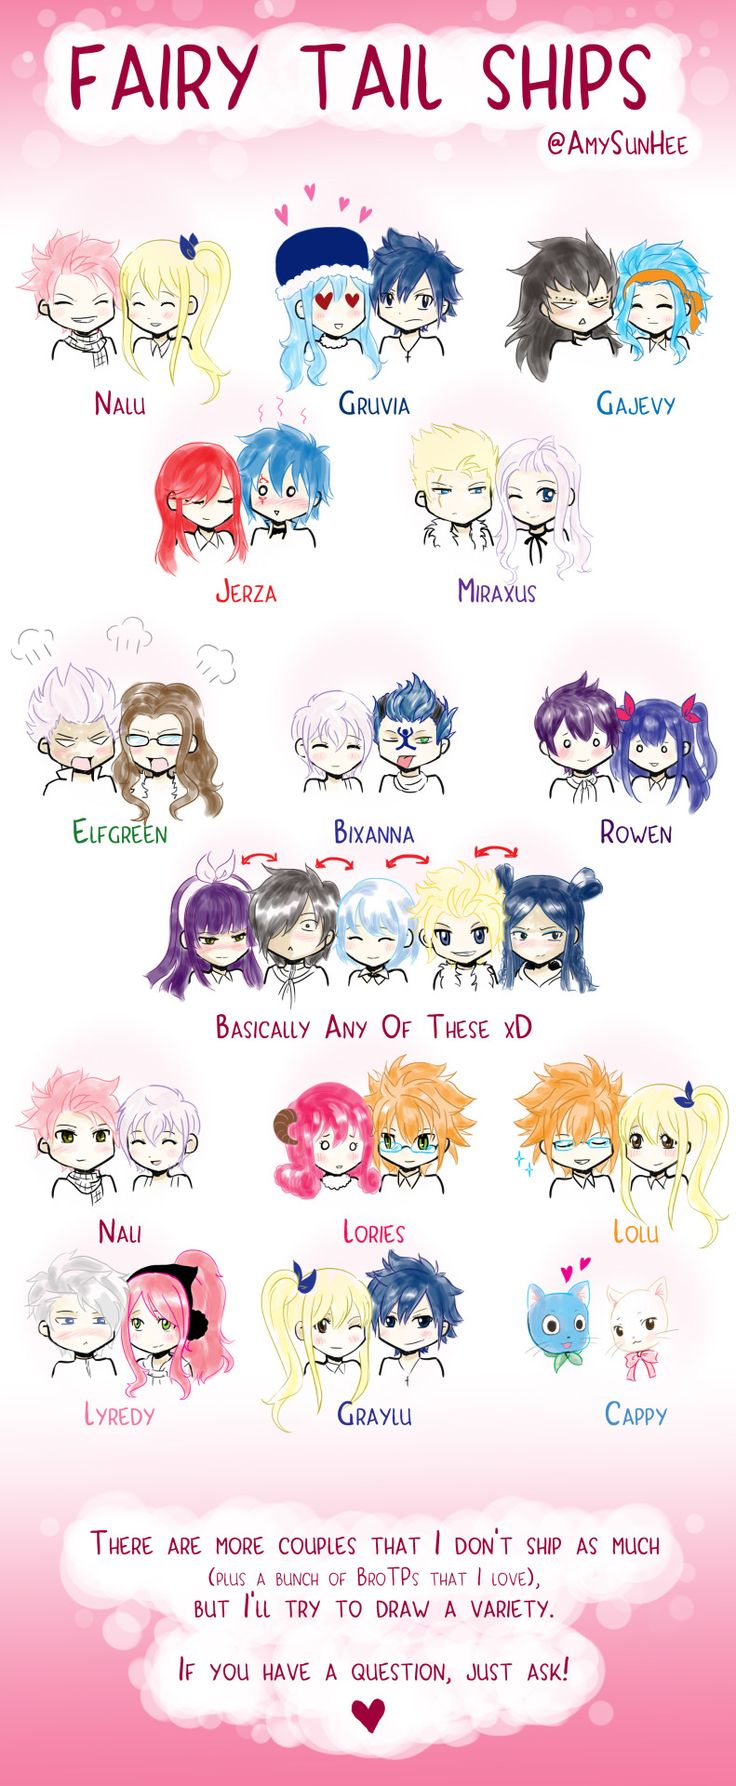 NALU, GRUVIA, GALE, JERZA, MIRAXUS, ELFGREEN, BIXANNA, ROWEN, LORIES, LYREDY and CAPPY :D <3<3<3 Then it should be ROKA (Rogue X Kagura) and STINGYU (Sting X Yukino) <3 I don't really ship is, LoLu, GrayLu, and NaLi >___<